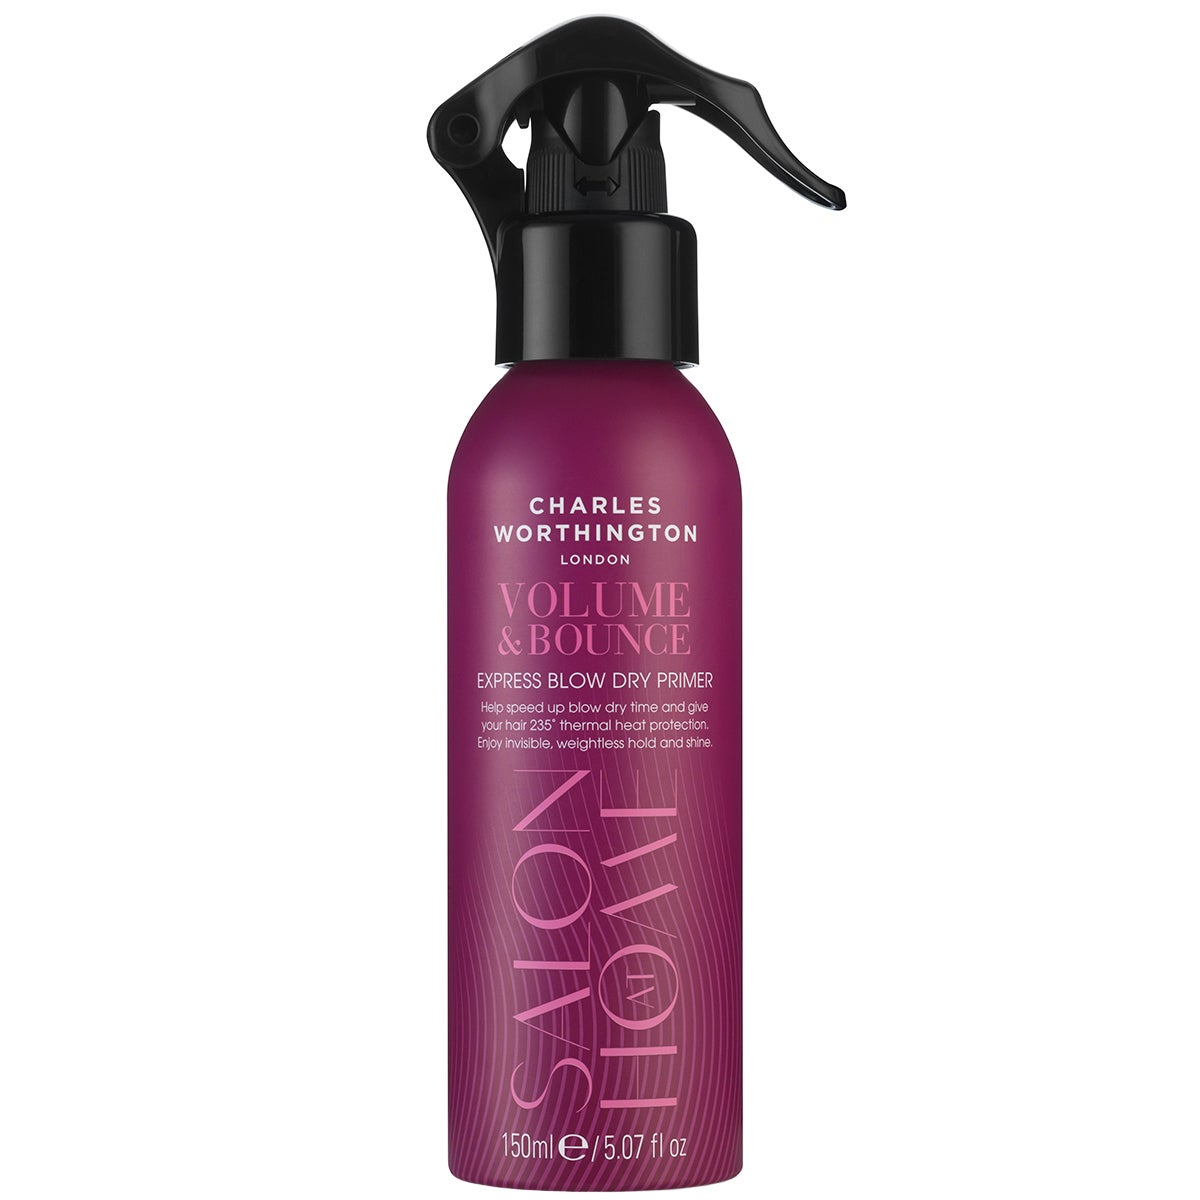 Charles Worthington Volume & Bounce Blow Dry Primer